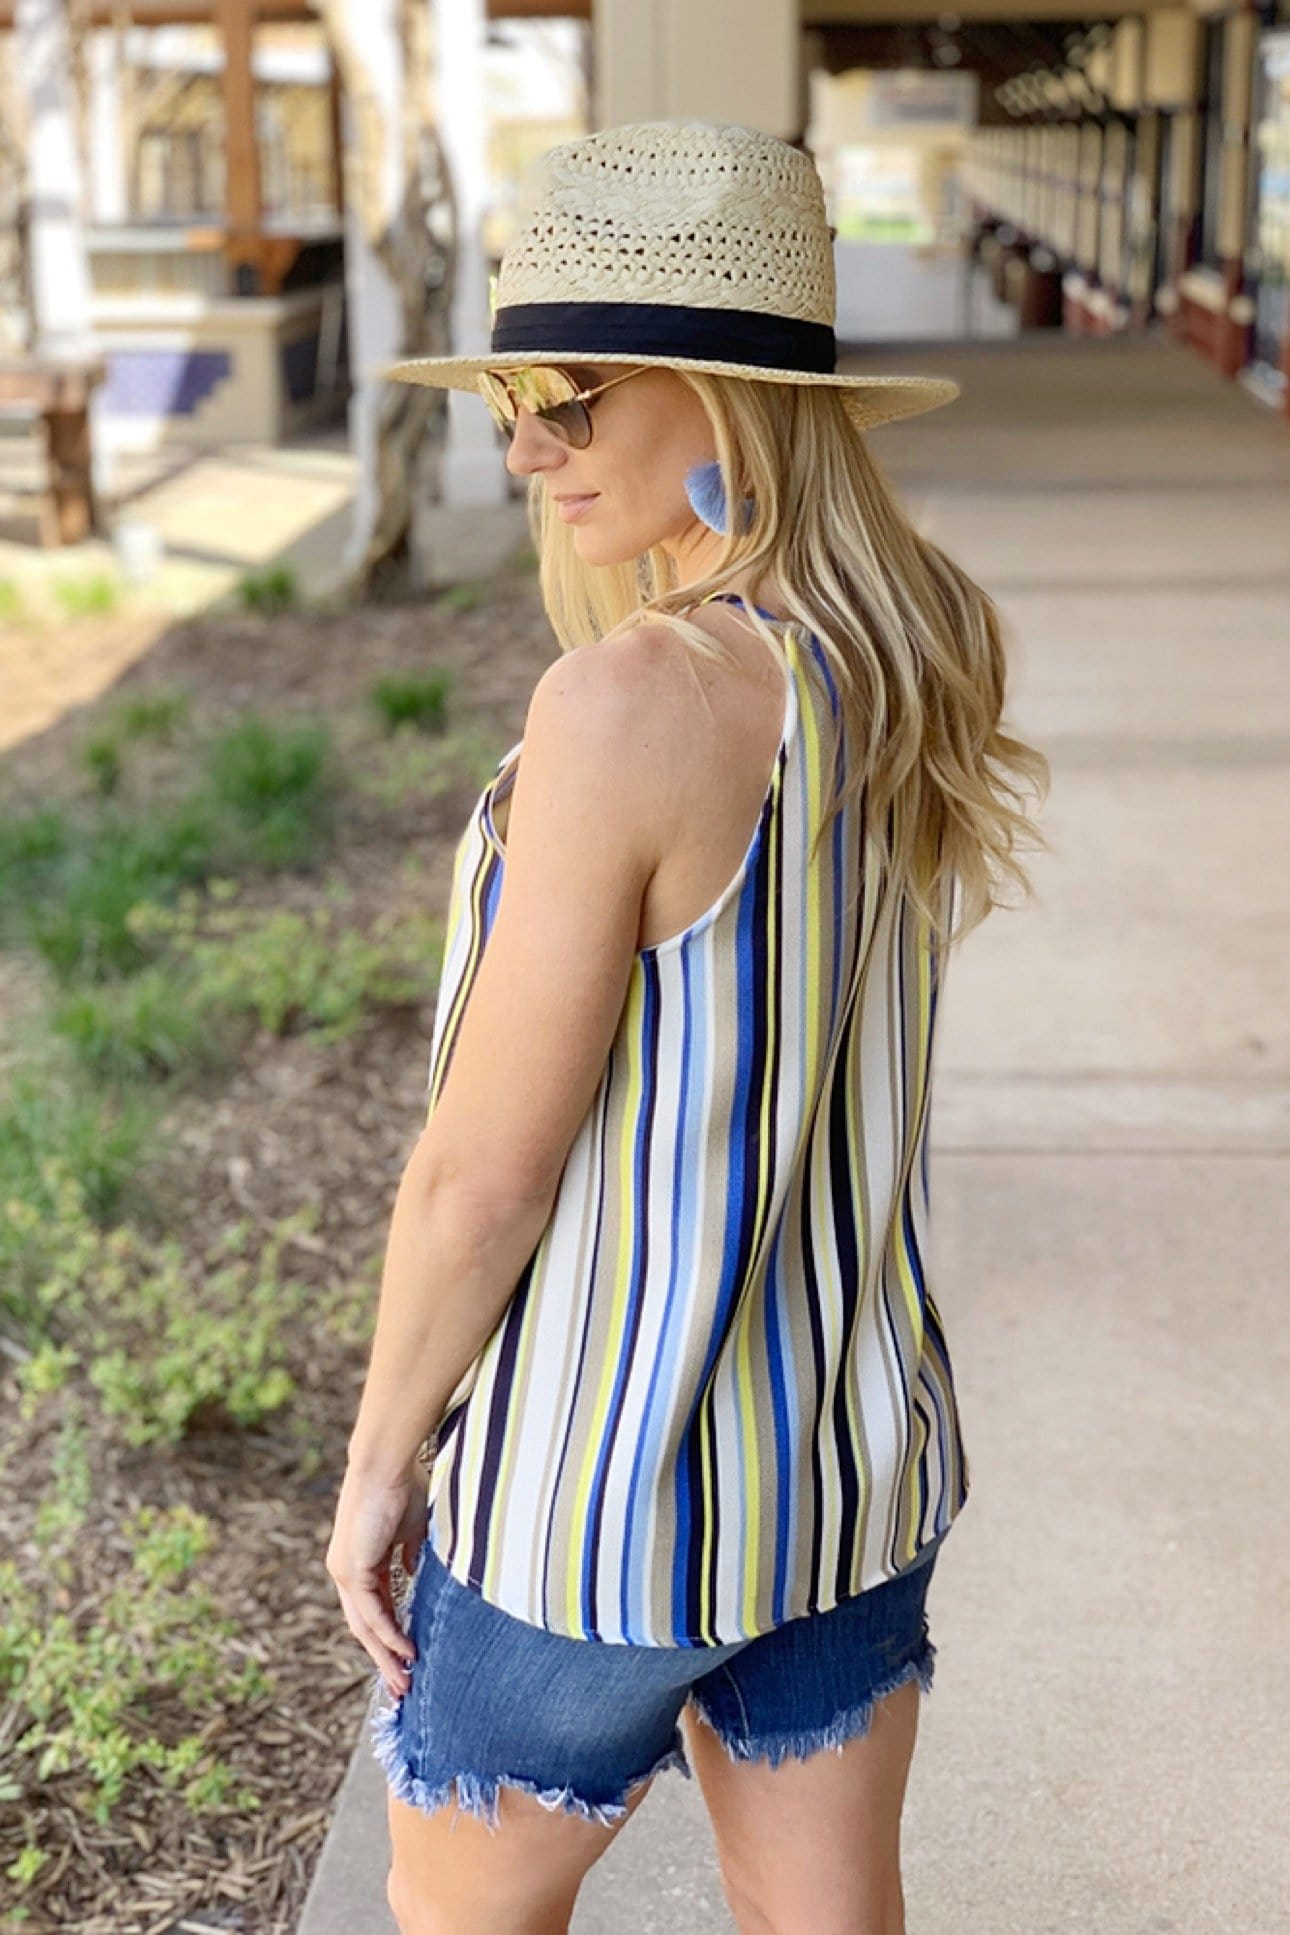 CHASING SUMMER STRIPED HALTER TOP - Infinity Raine